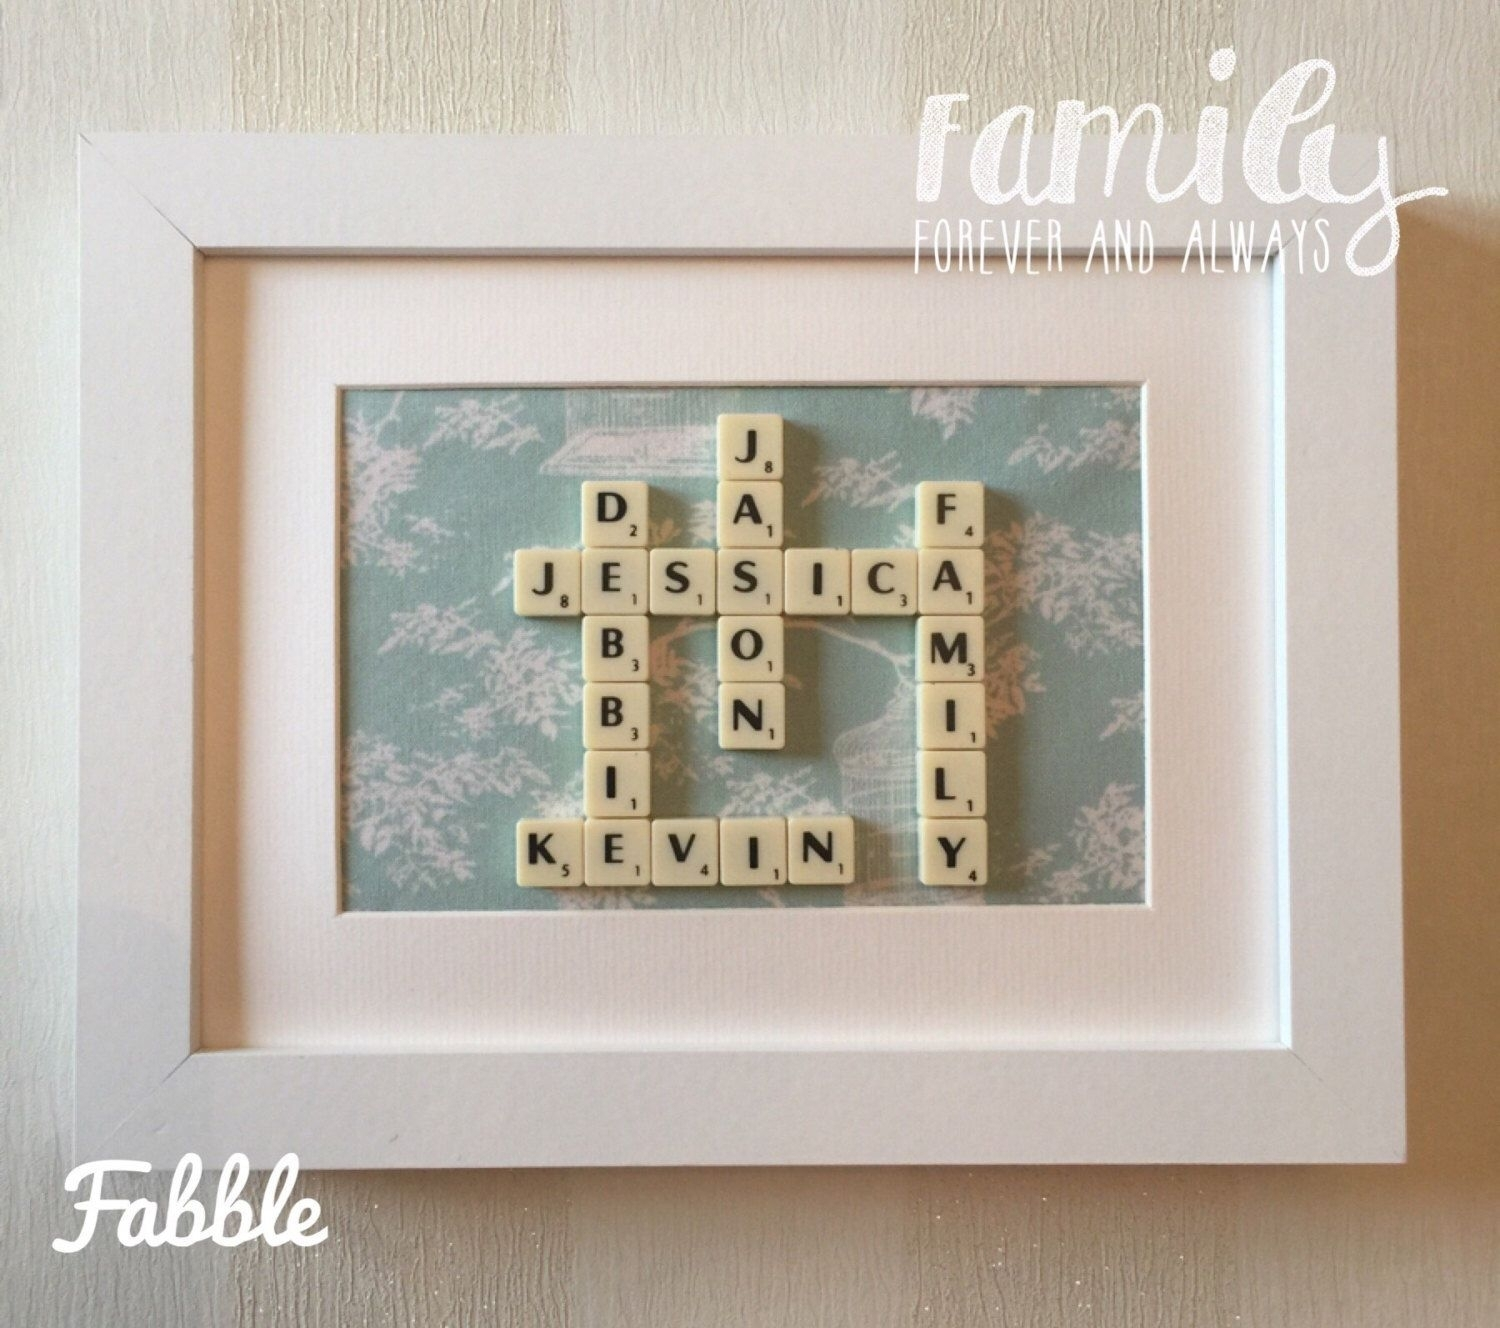 Scrabble Tile Wall Decor – Scrabble Tile Wall Decor Gift For Most Popular Fabric Square Wall Art (View 9 of 15)